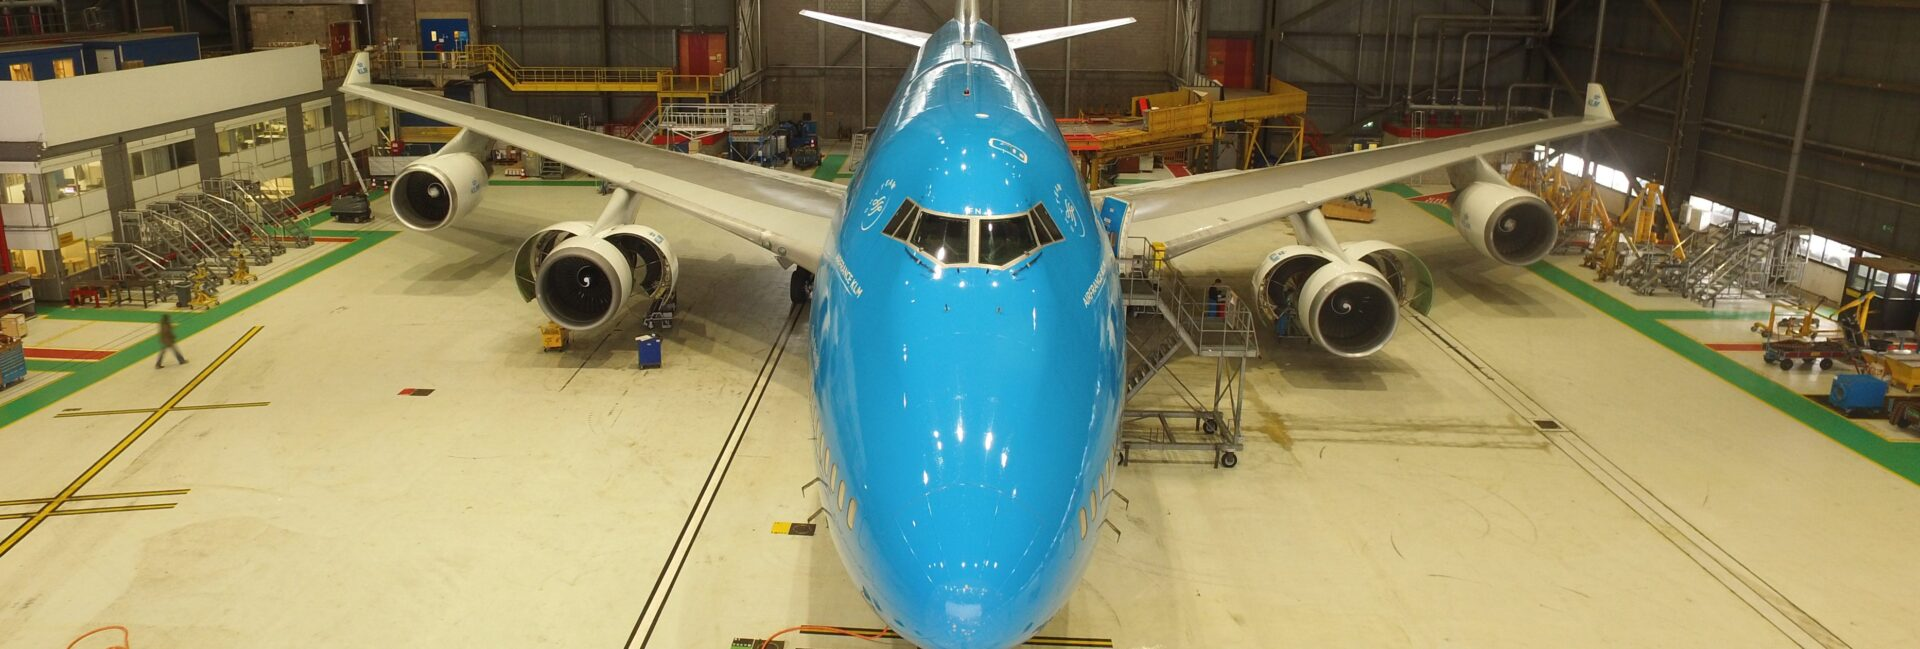 Picture of KLM Boeing 747-400 in hangar